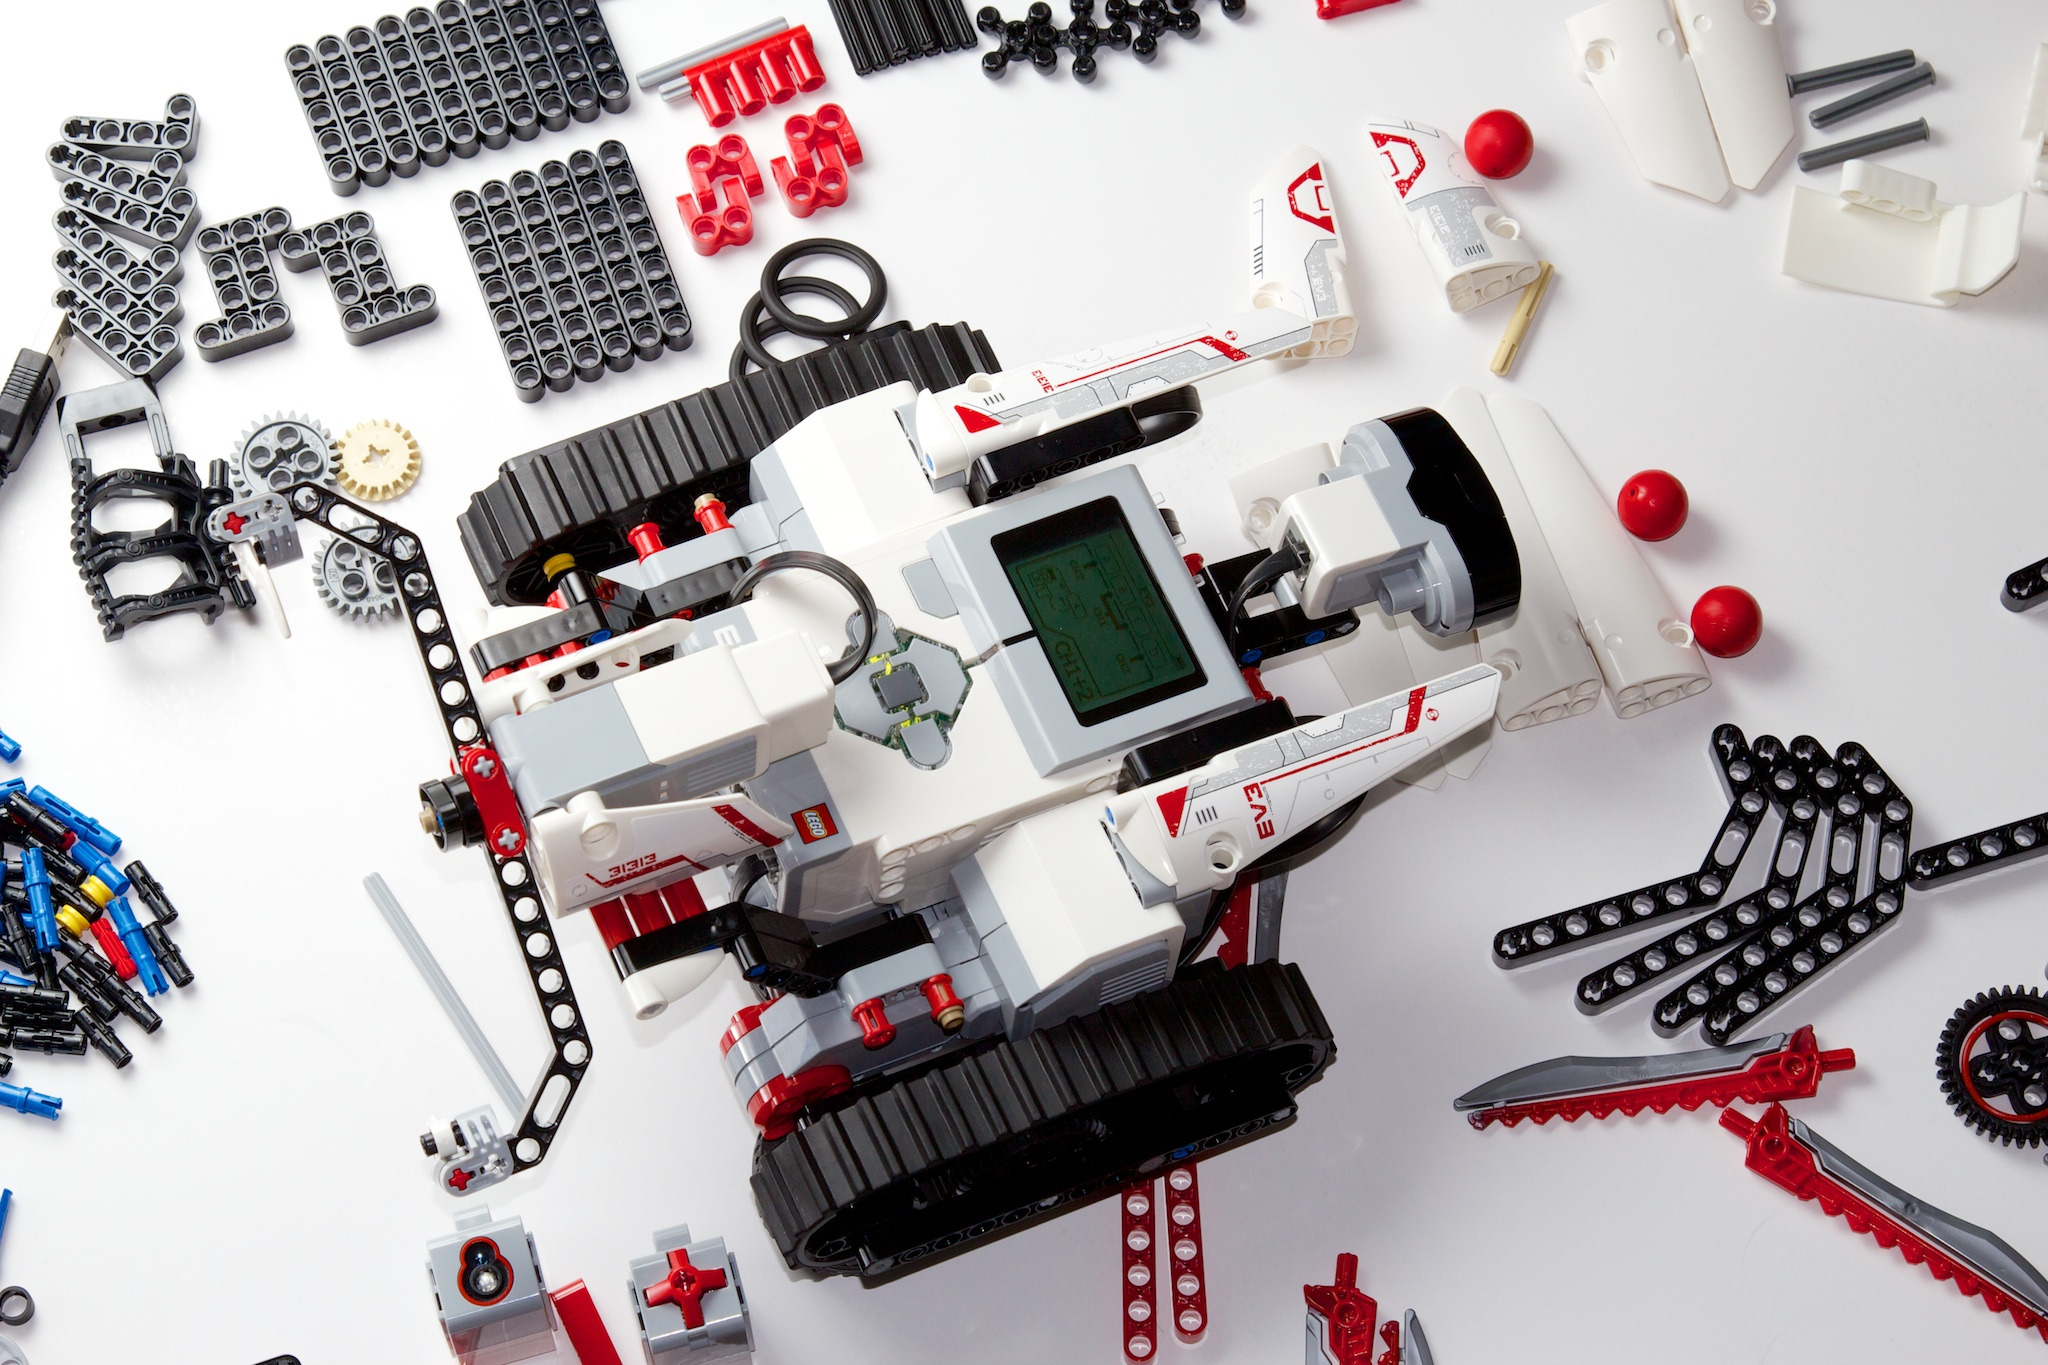 Review: Lego Mindstorms EV3 means giant robots, powerful